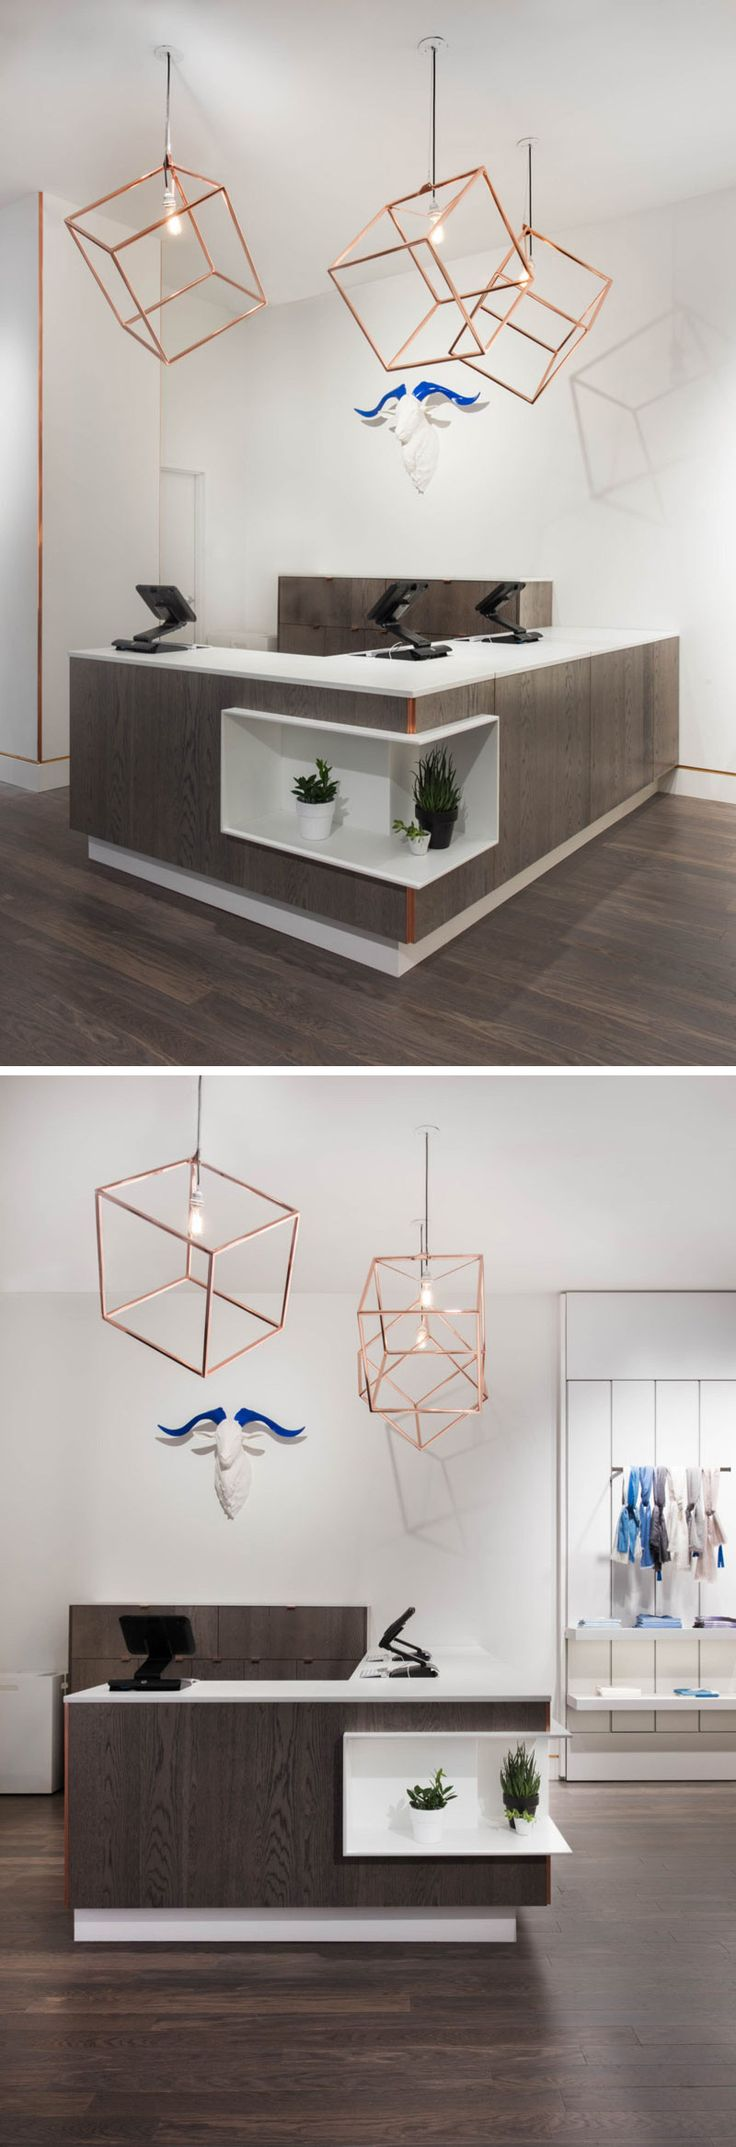 Radar Design, a company based in Toronto, Ontario has created this modern Cube Pendant Light. Handmade, the copper plated solid steel cube fixture instantly gives any interior a unique feel.